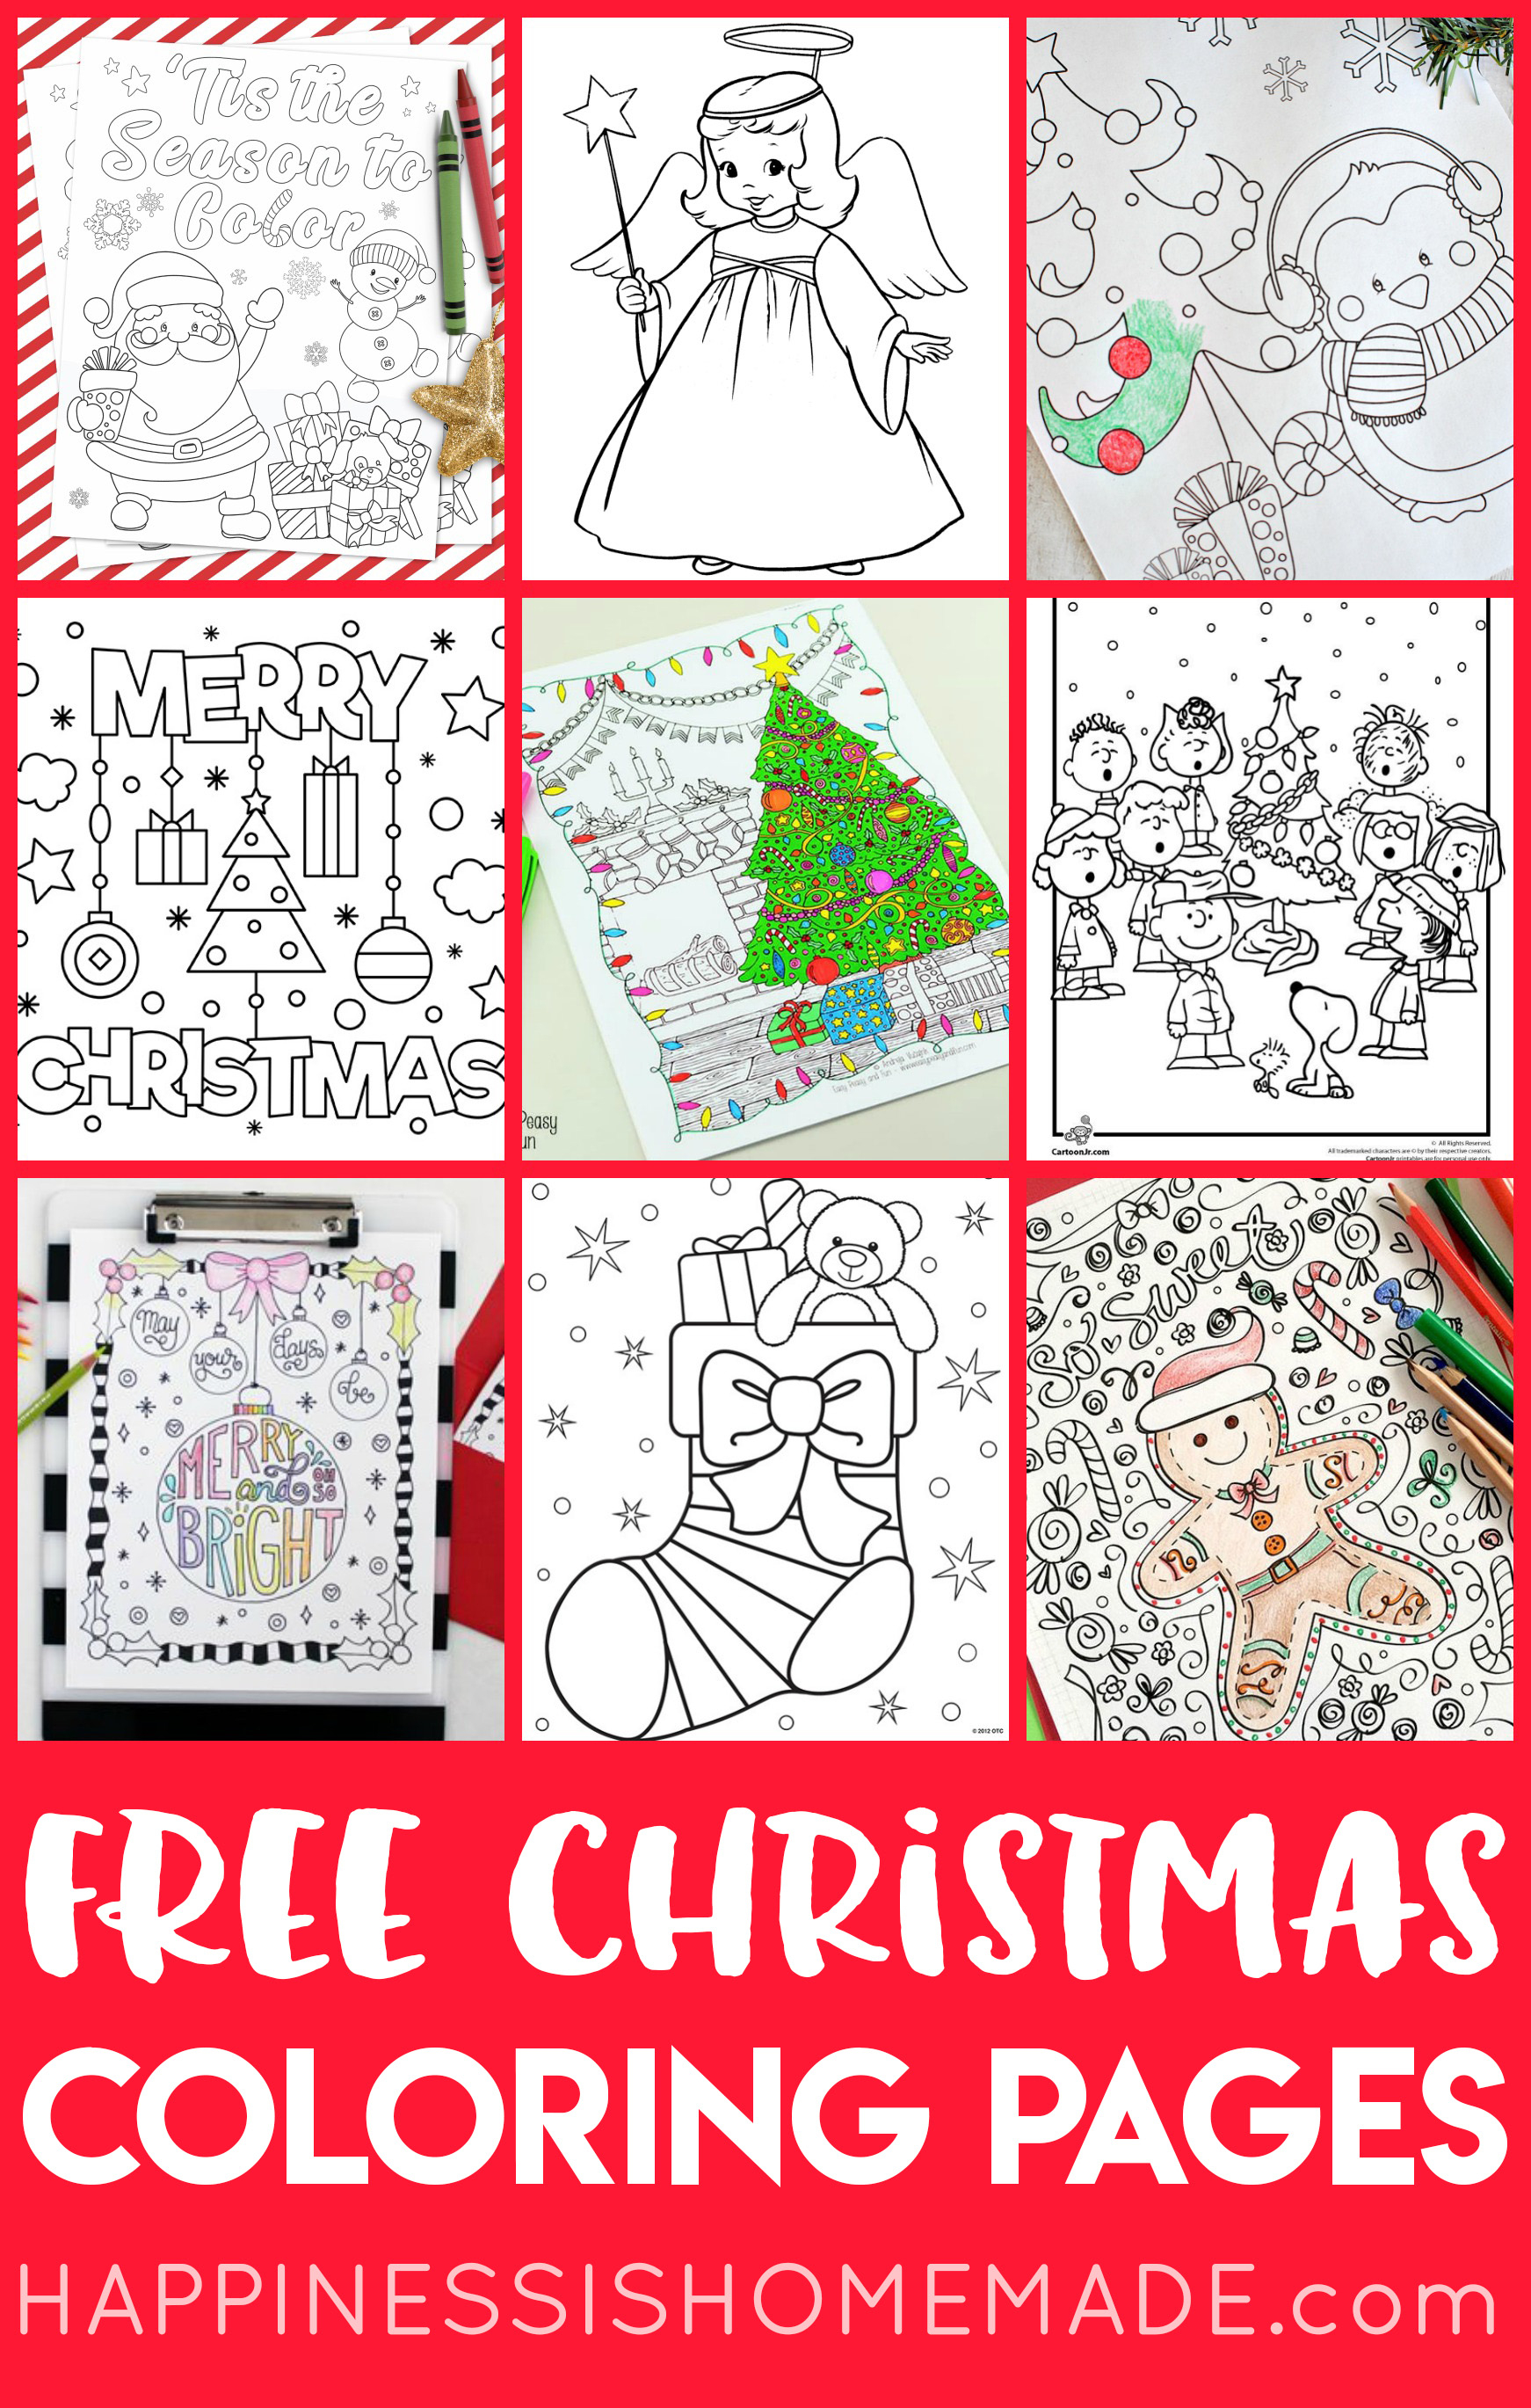 Free Christmas Coloring Pages For Adults And Kids - Happiness Is - Free Printable Christmas Pictures